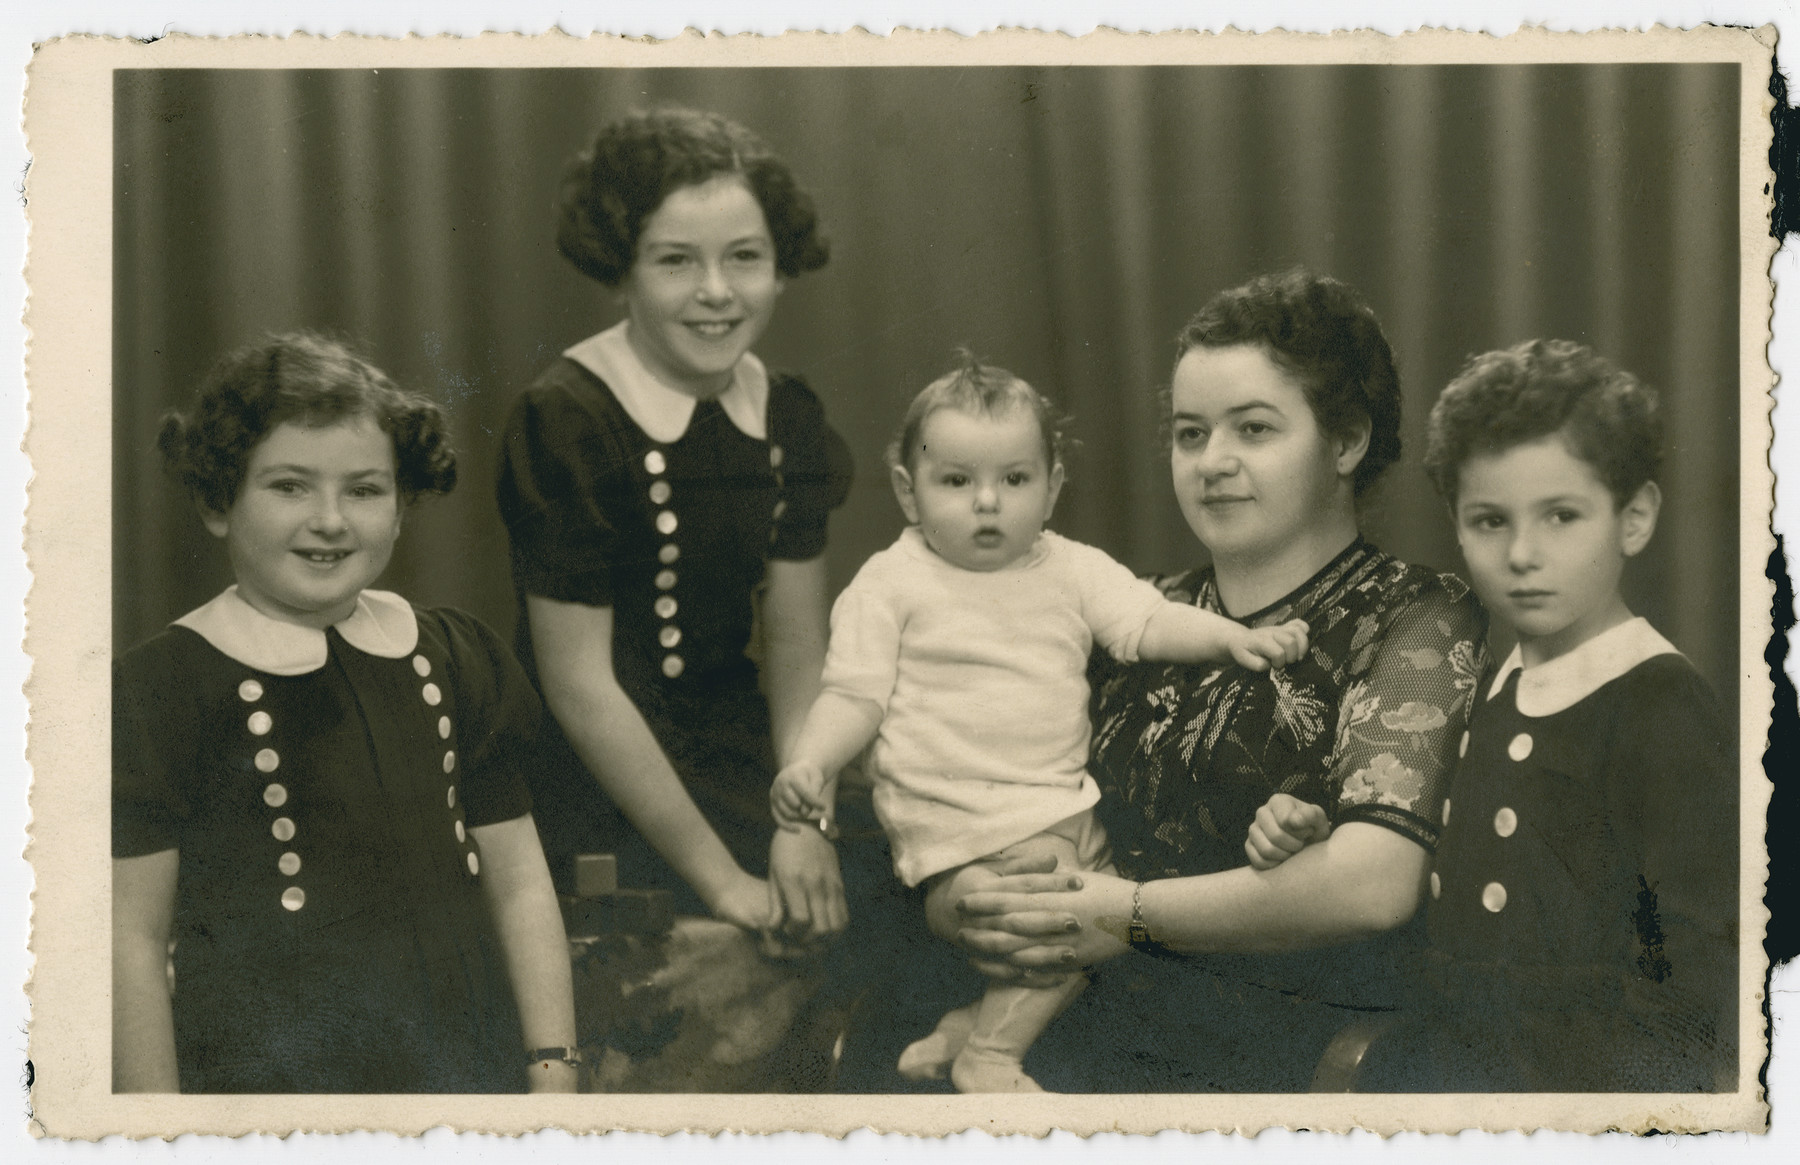 Studio portrait of the wife and children of Michael (Max) Weiss, exact date and locale unknown.  Pictured from left to right are Edith, Regina, Hanna, Helen and Henry Weiss.